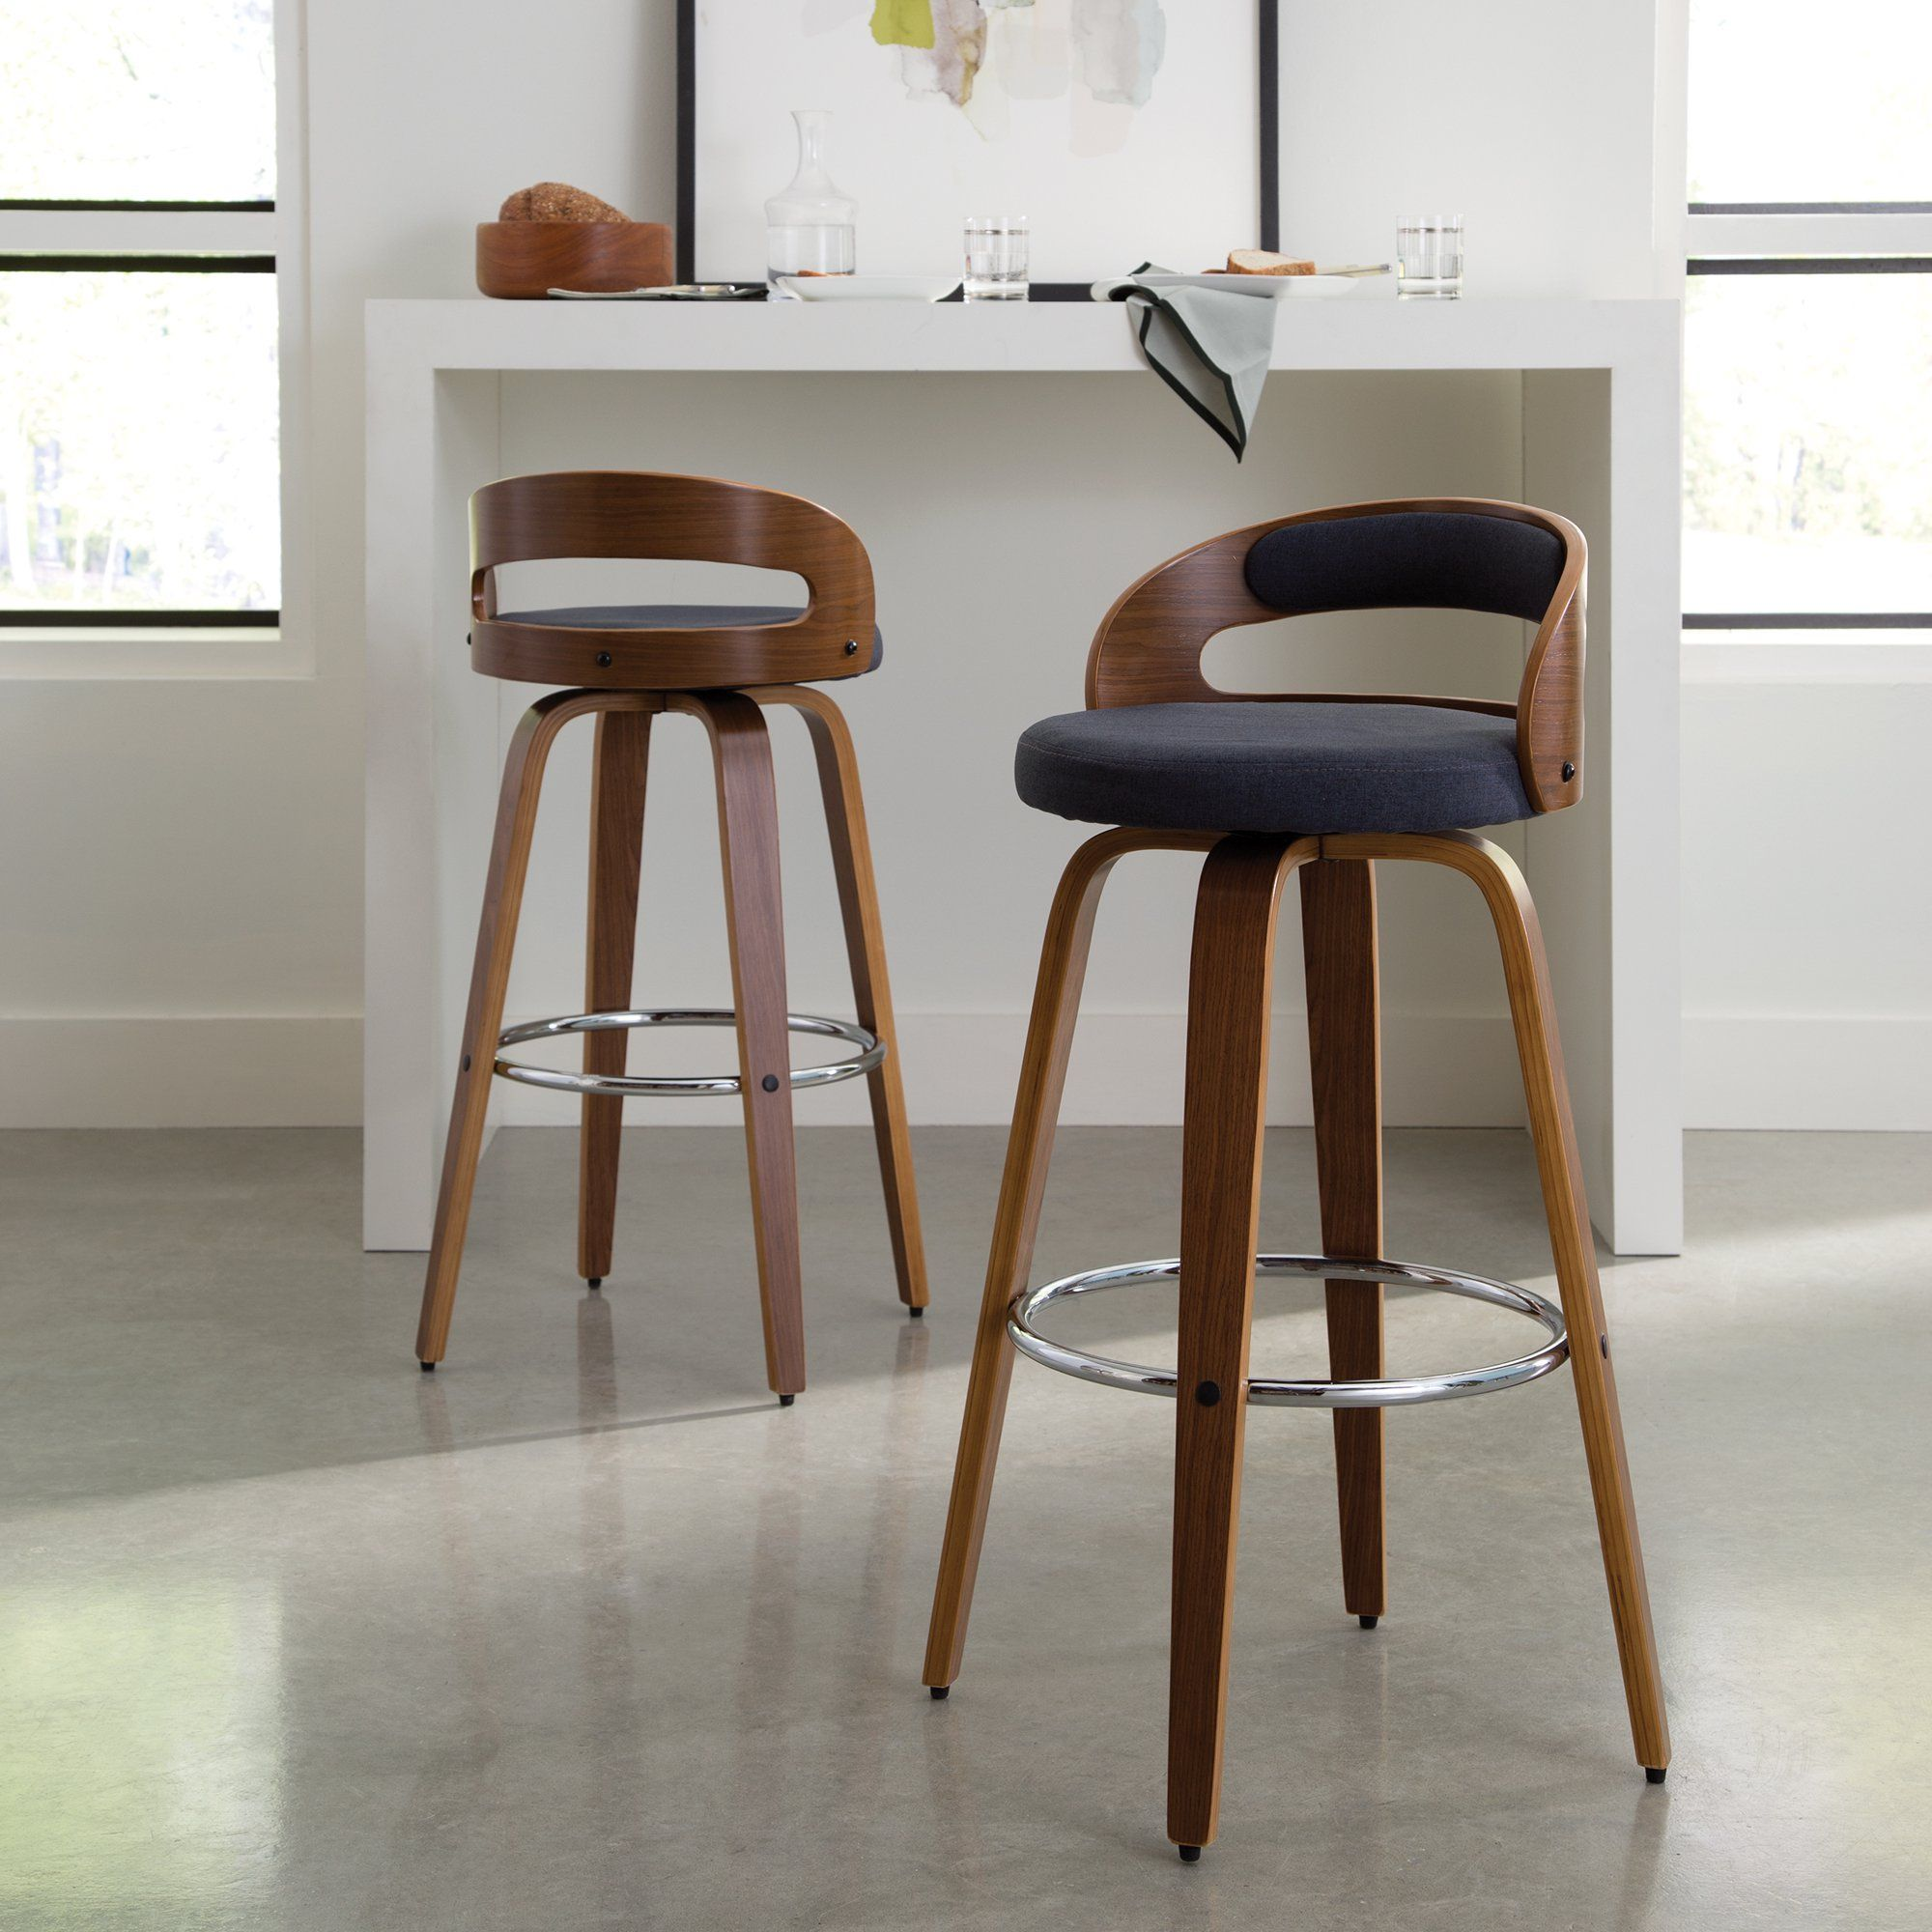 Ofm 161 Collection Mid Century Modern 30 Low Back Bentwood Frame Swivel Seat Stool With Fabric Back And Seat Cushion In Walnut Navy 161 Wf30c Nvy Walmart In 2021 Comfortable Bar Stools Swivel